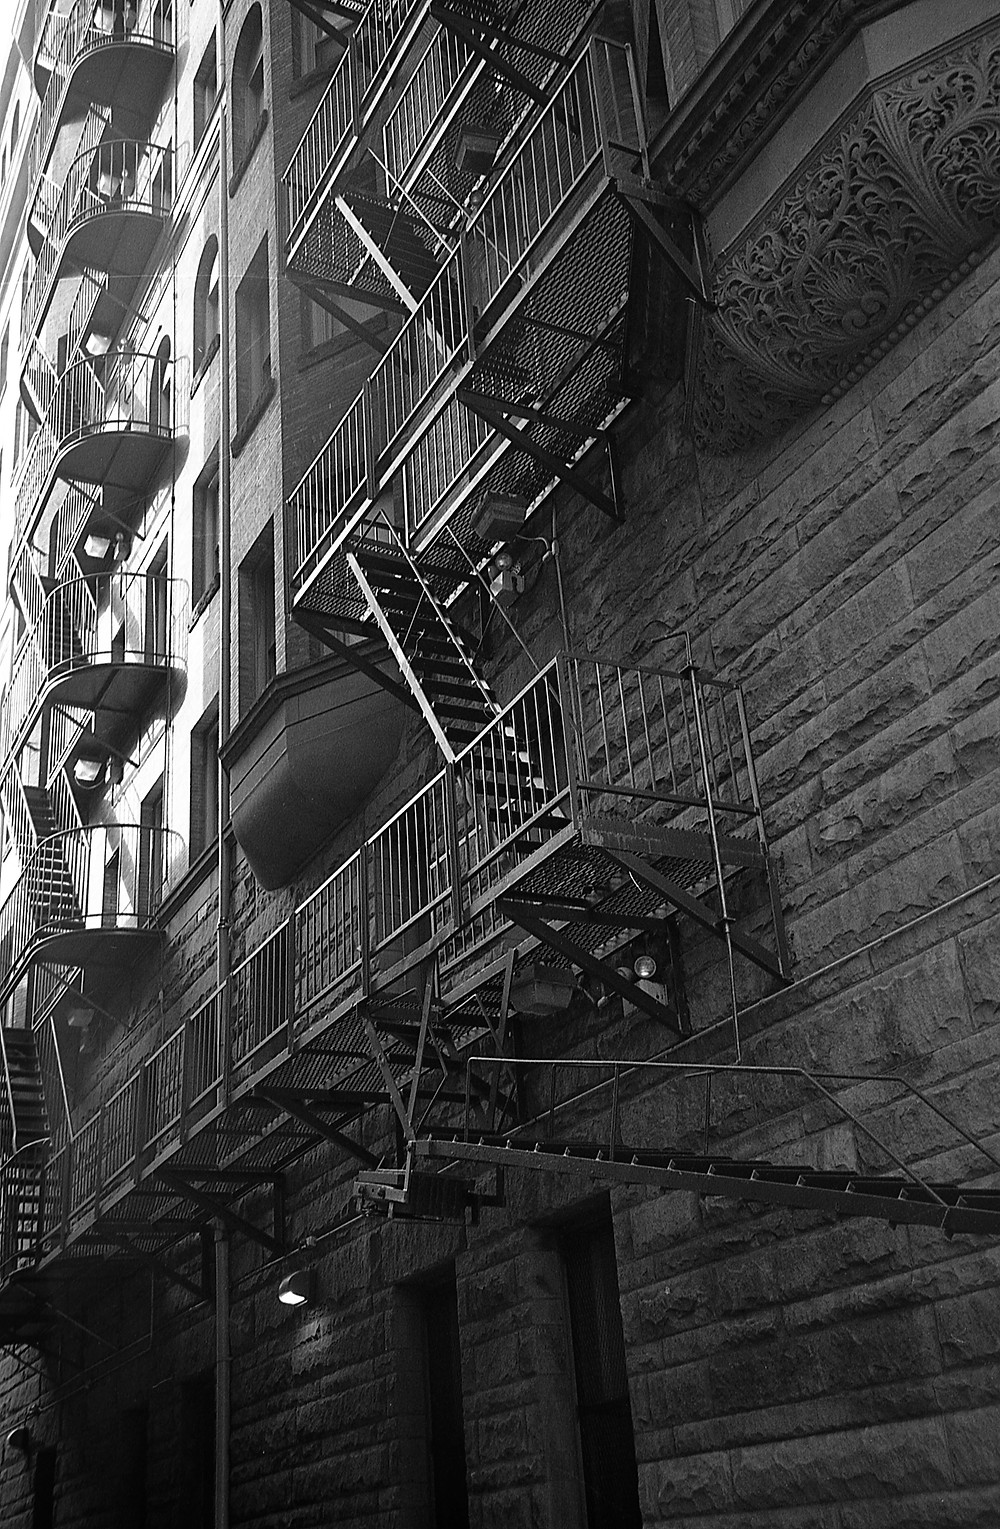 Patterns in fire escapes